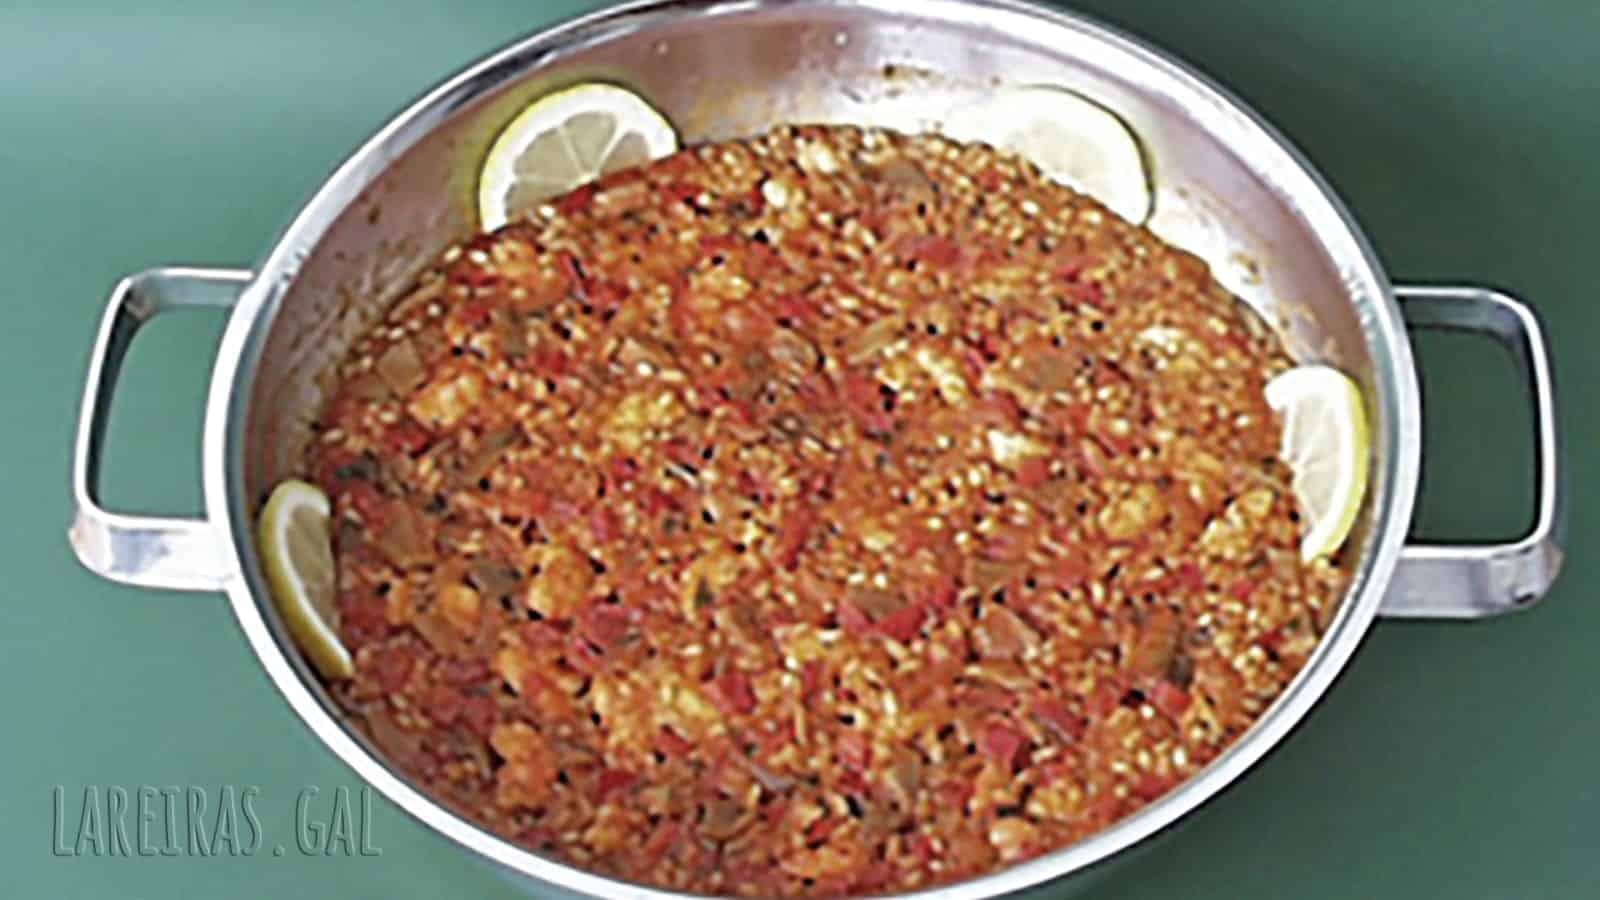 Arroz con cigalitas